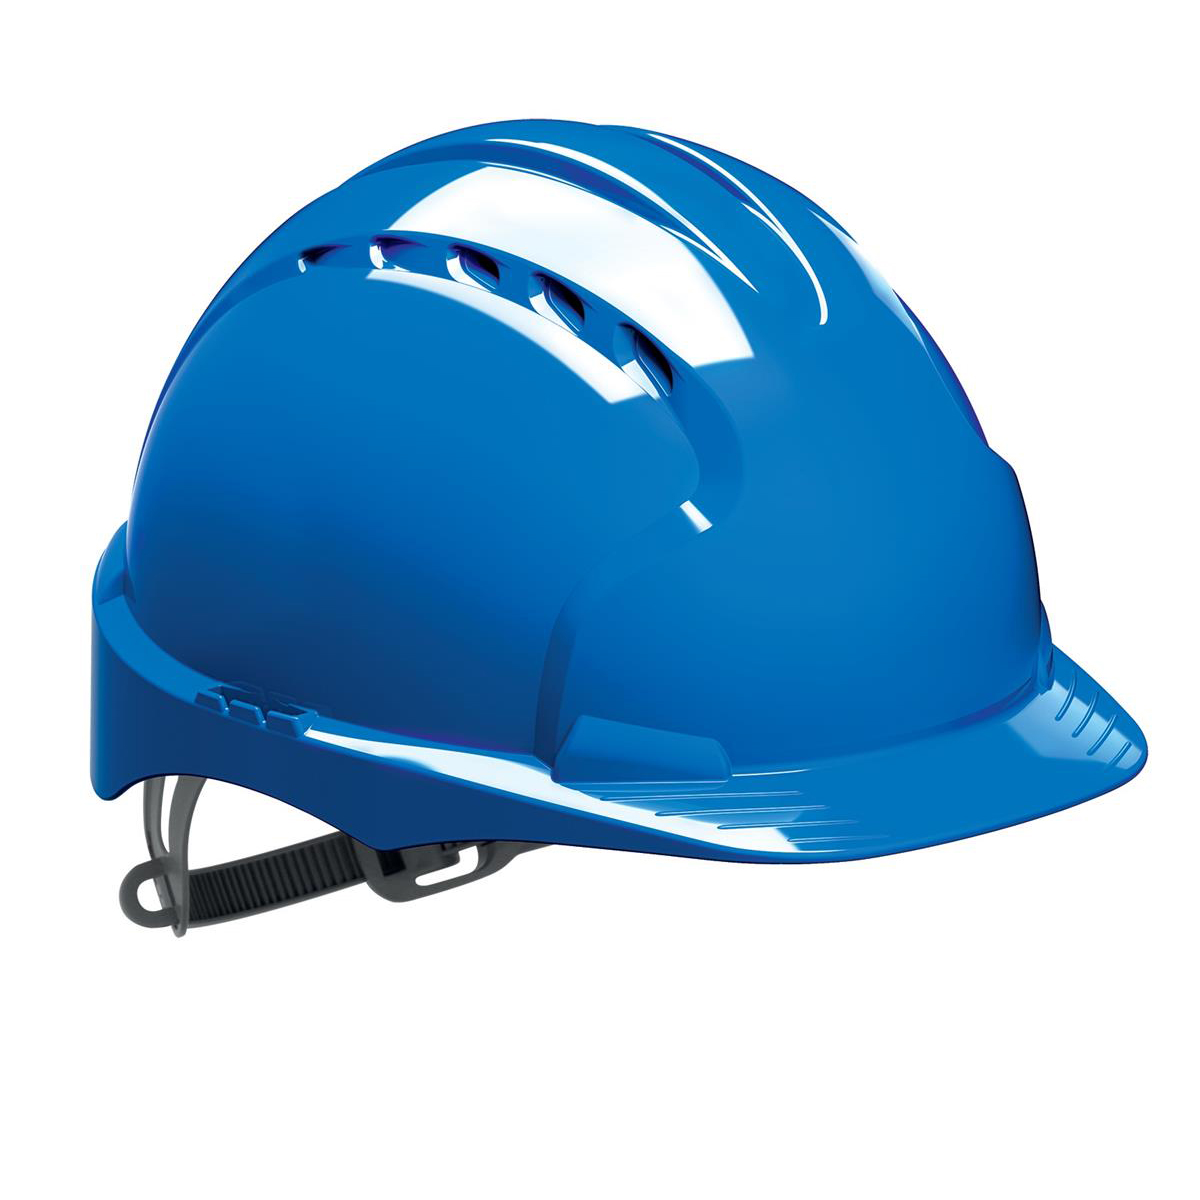 Safety helmets JSP EVO2 Safety Helmet HDPE 6-point Polyethylene Harness EN397 Standard Blue Ref AJF030-000-500